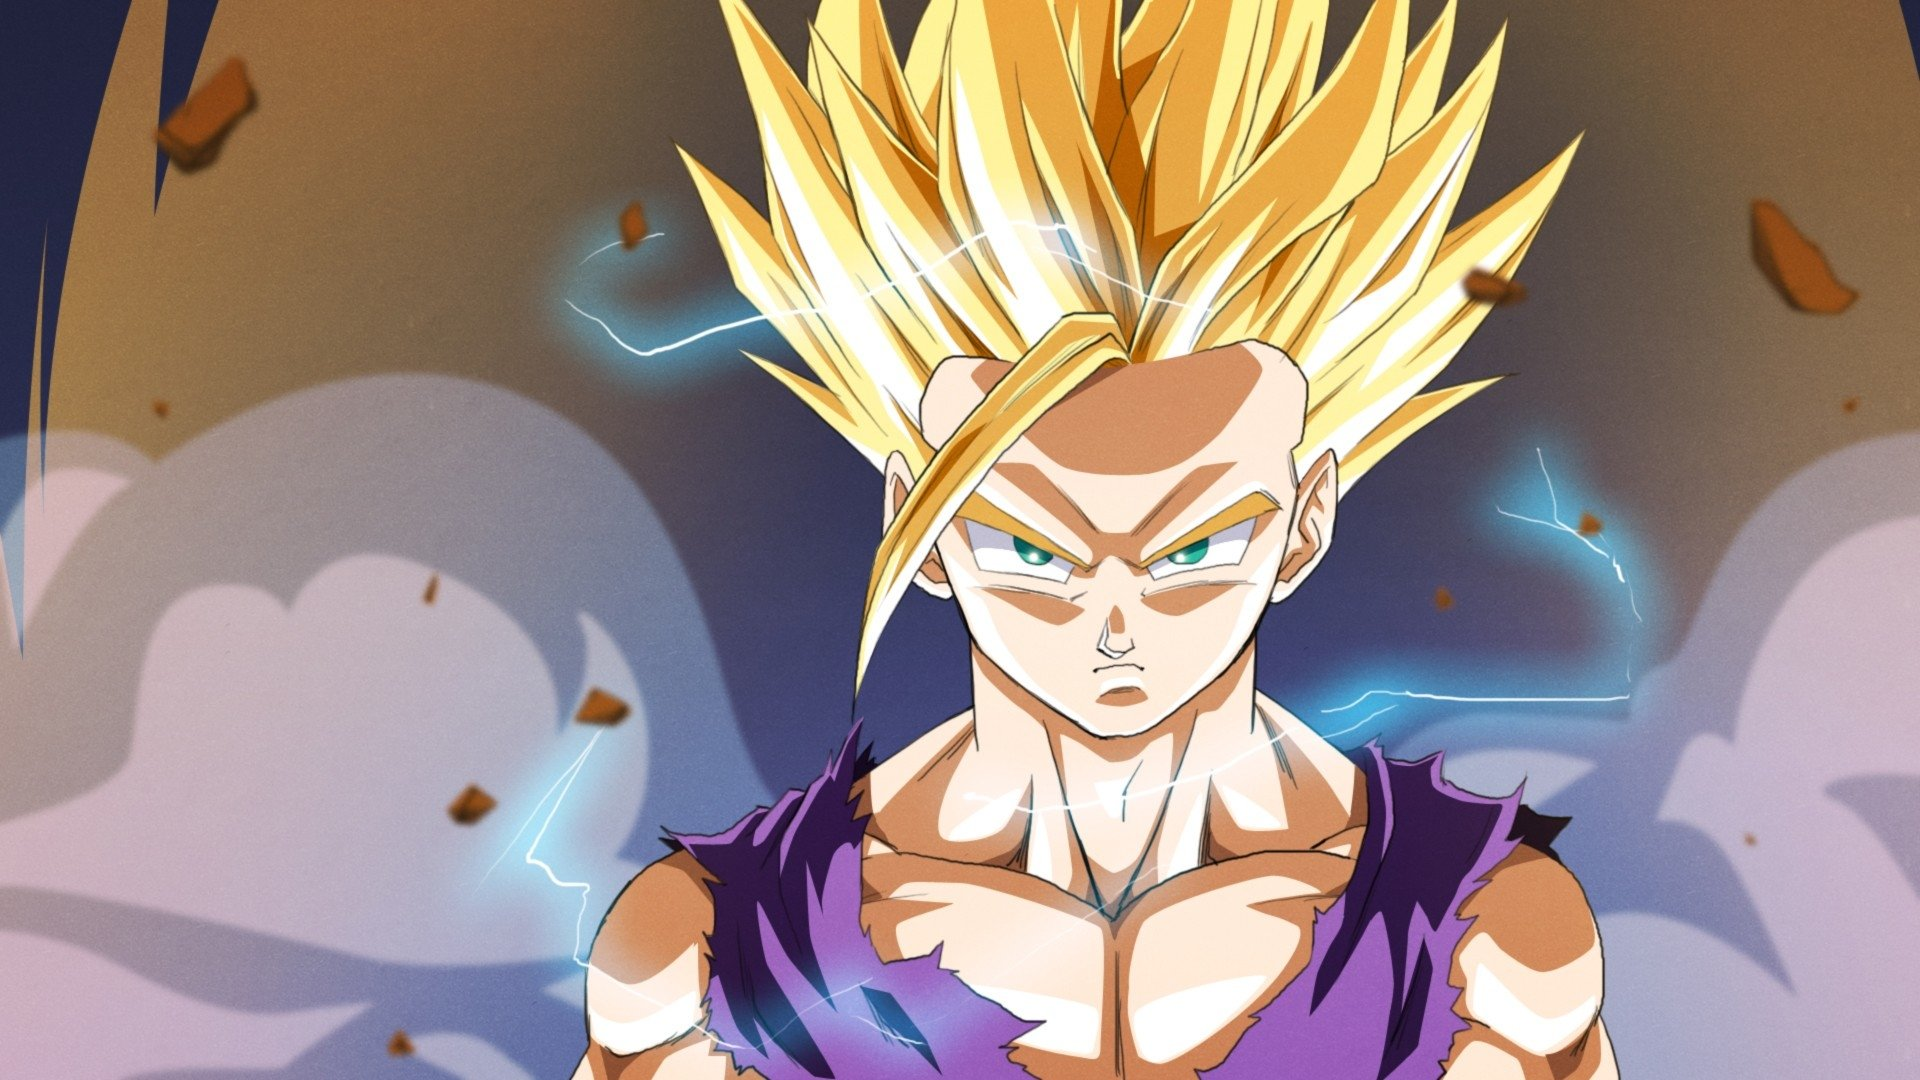 817 Dragon Ball Z Hd Wallpapers Background Images Wallpaper Abyss